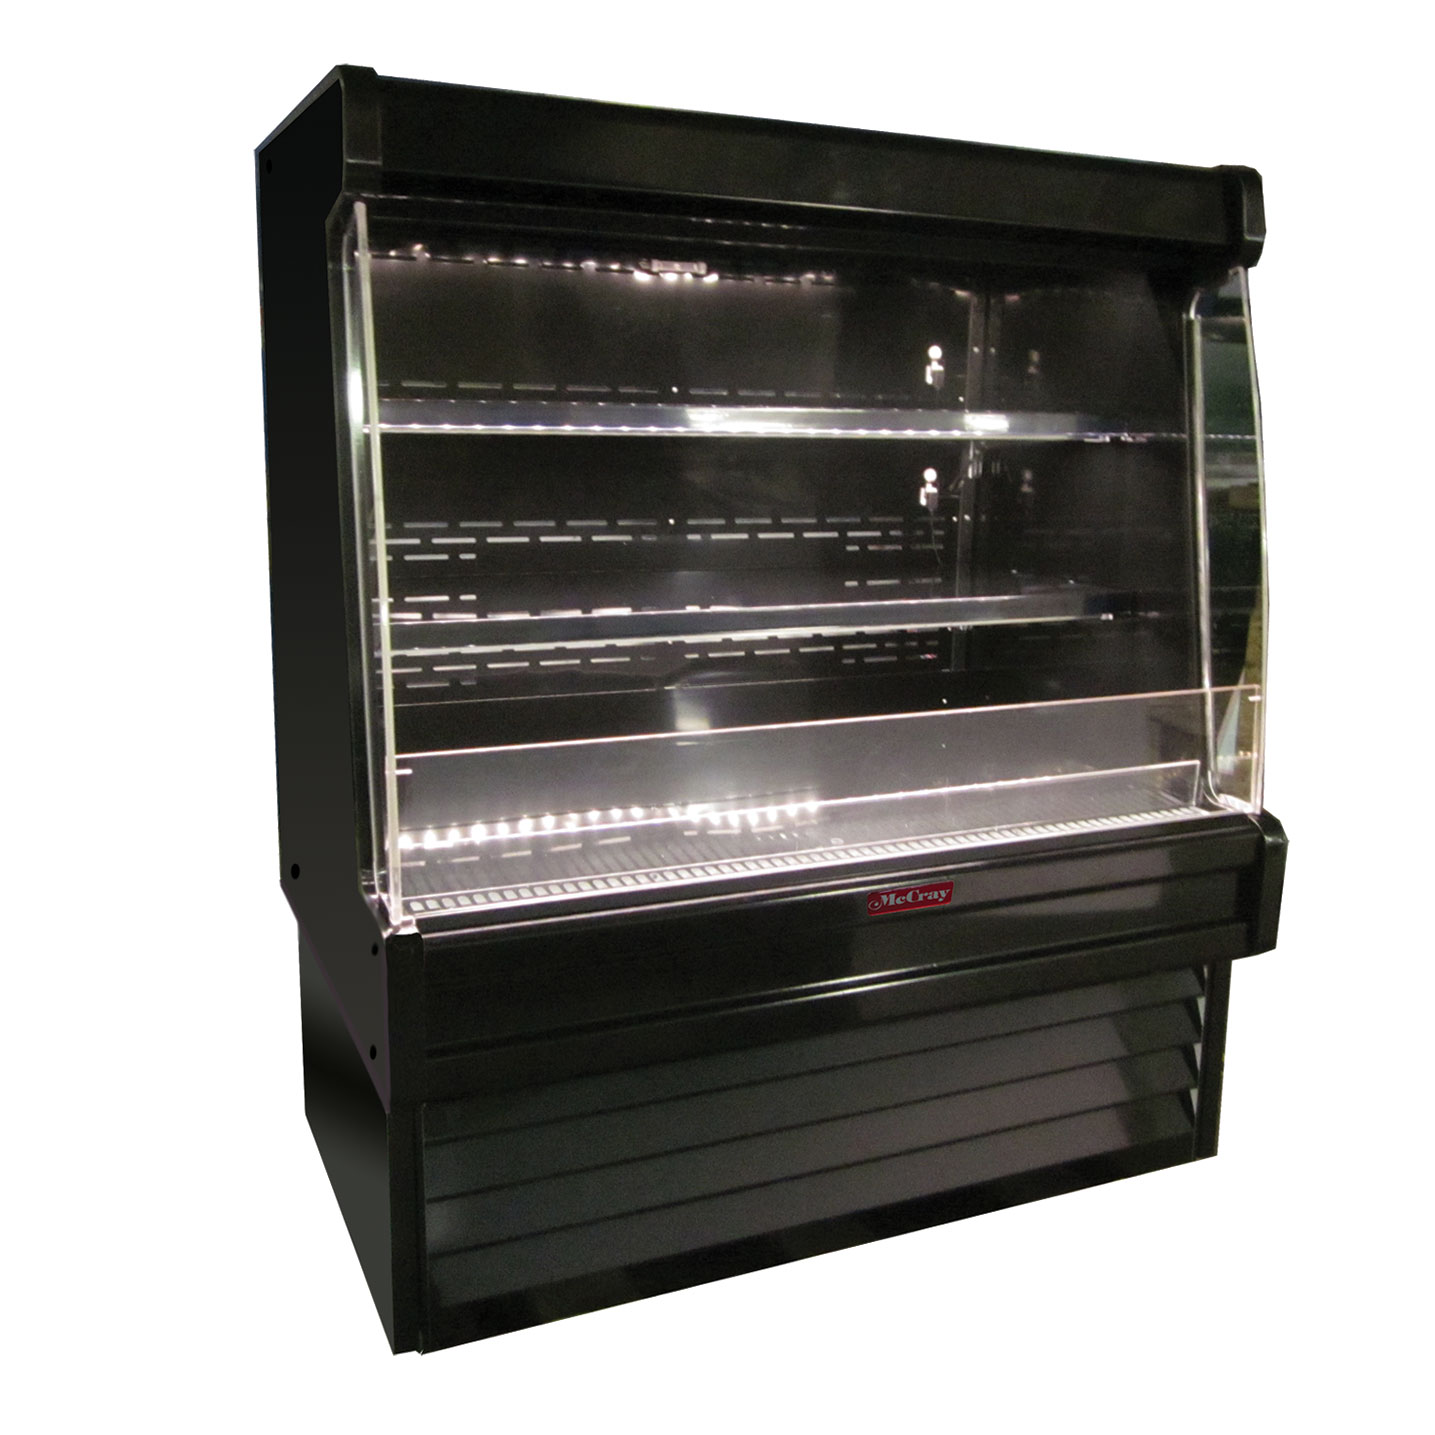 Howard-McCray R-OP35E-3L-B-LED display case, produce